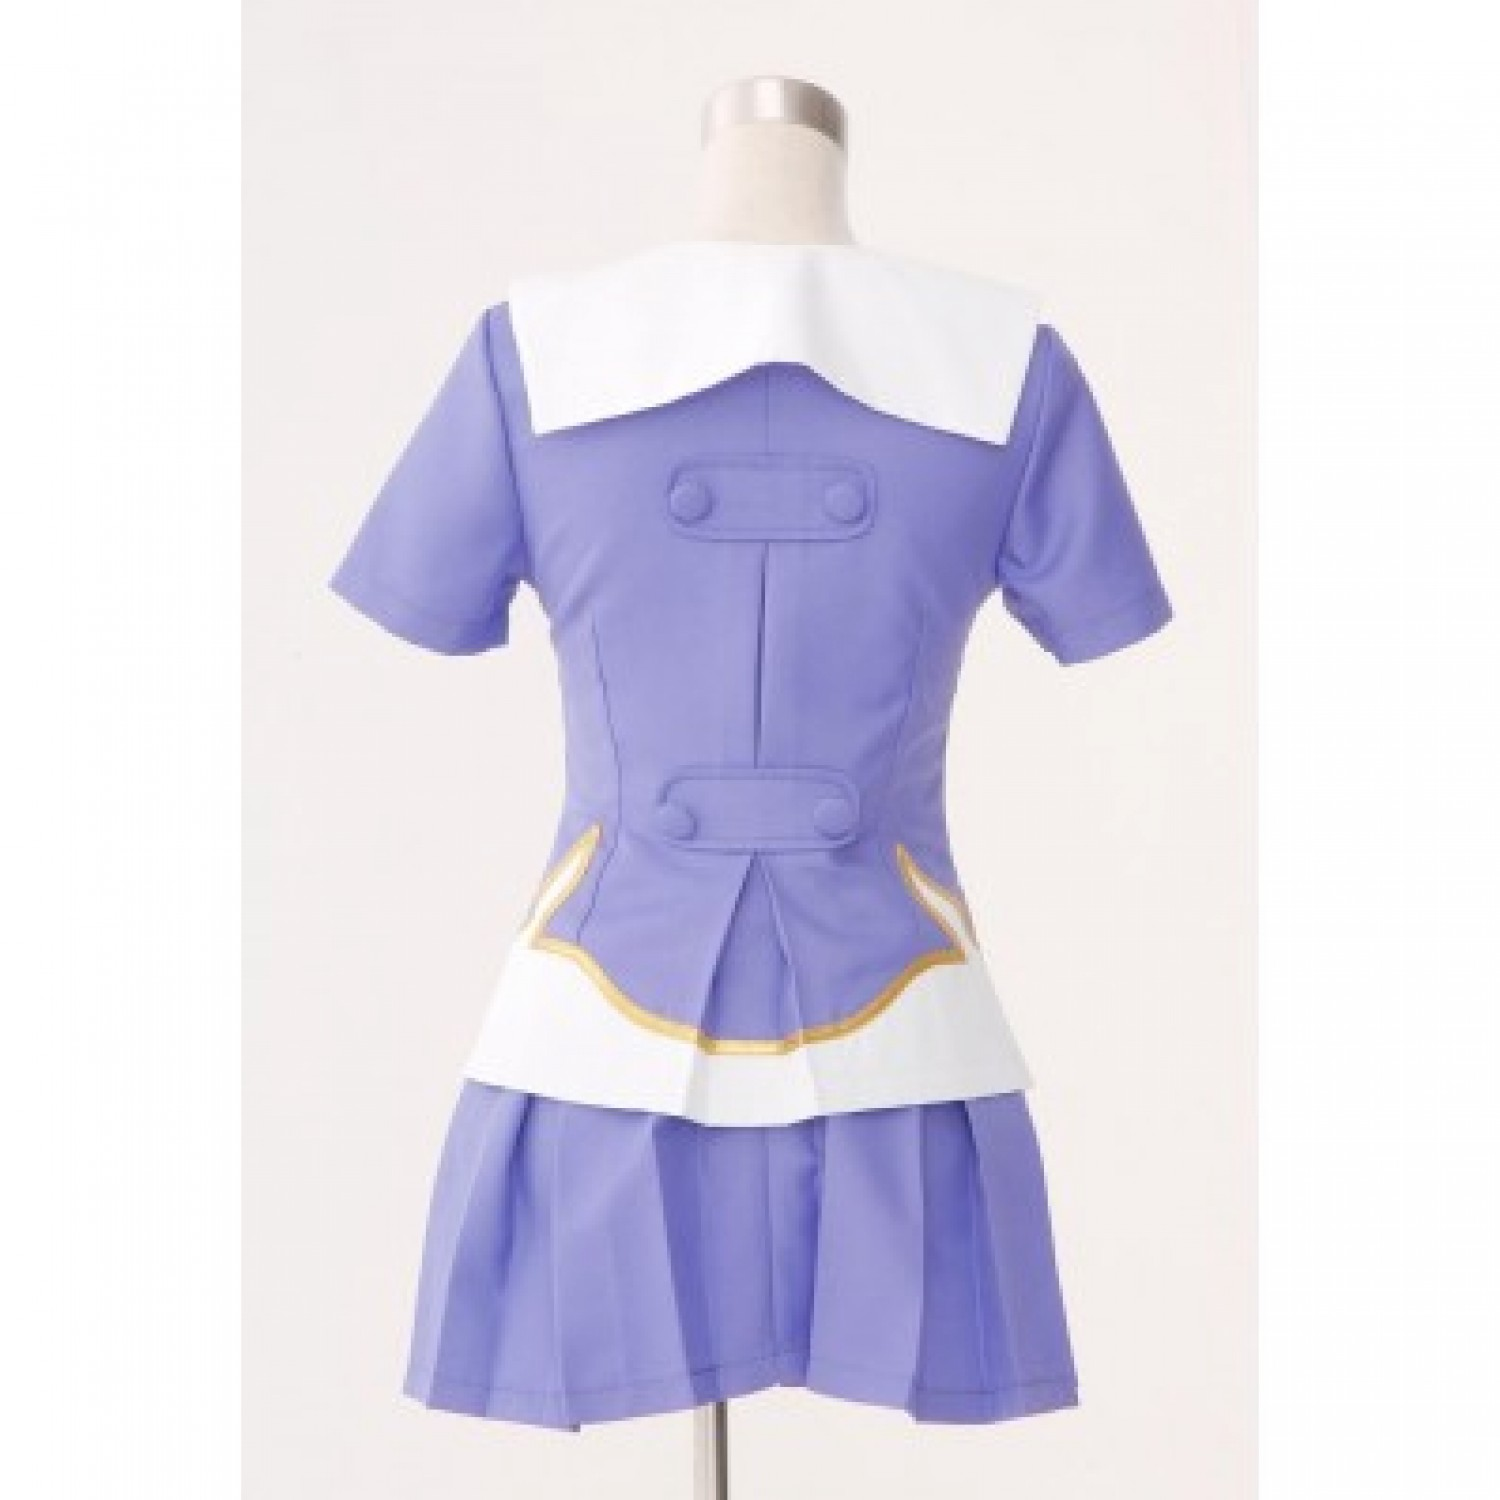 Future Diary Gasai Yuno Japan Anime Cosplay Costume